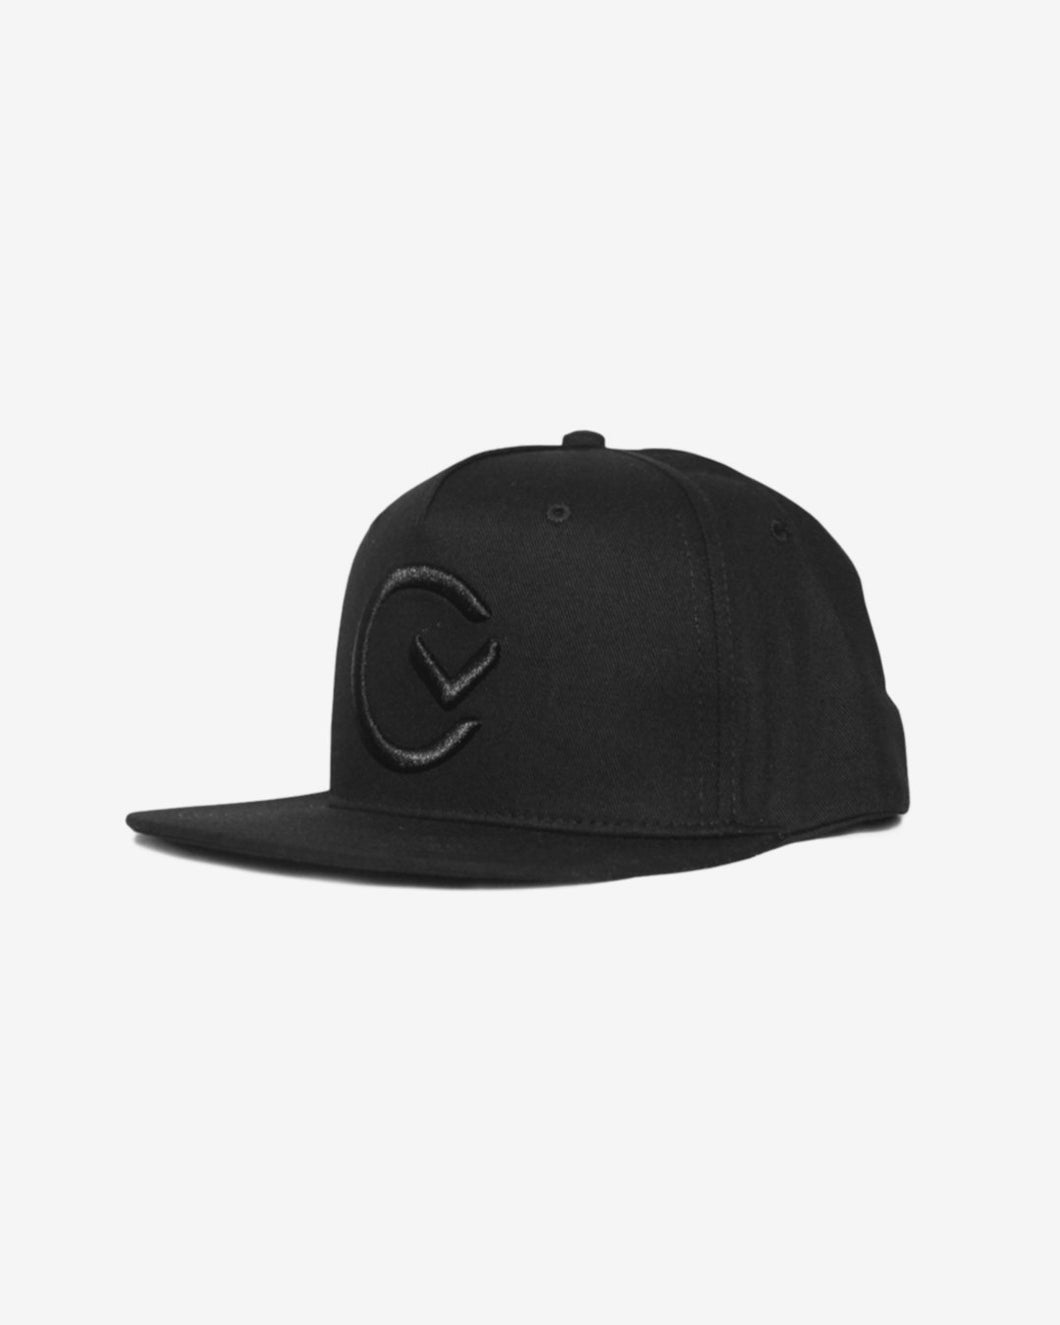 Gwapitos Logo Snapback - KS Boardriders | Philippines Online Branded Clothes & Surf Shop